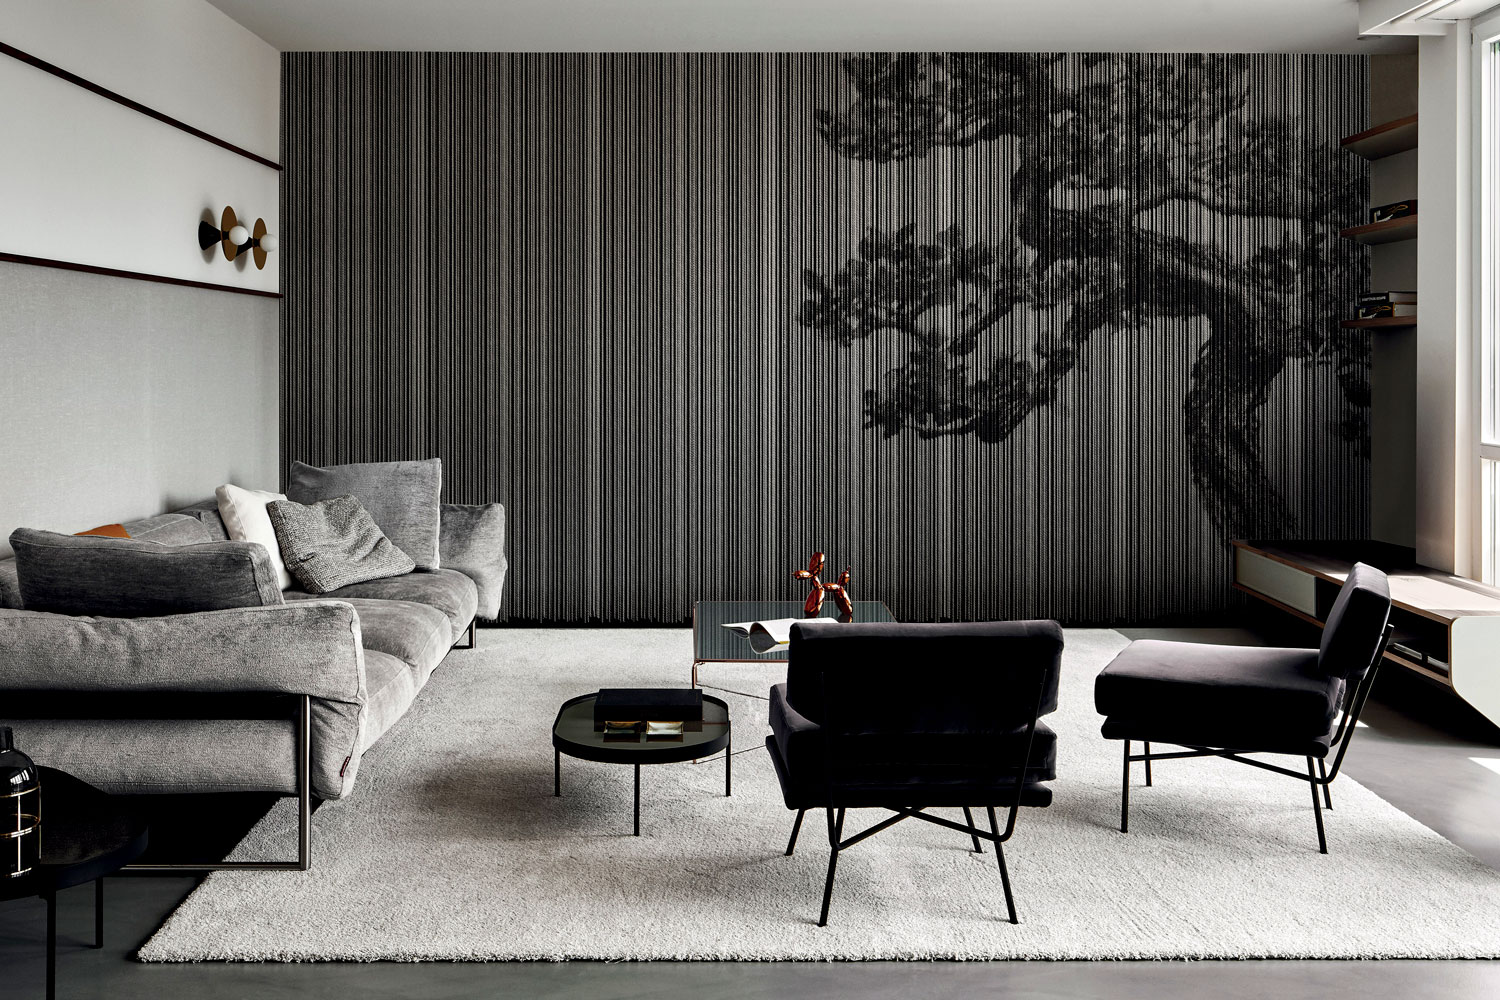 londonart-exclusivewallpaper-20-20016-pl